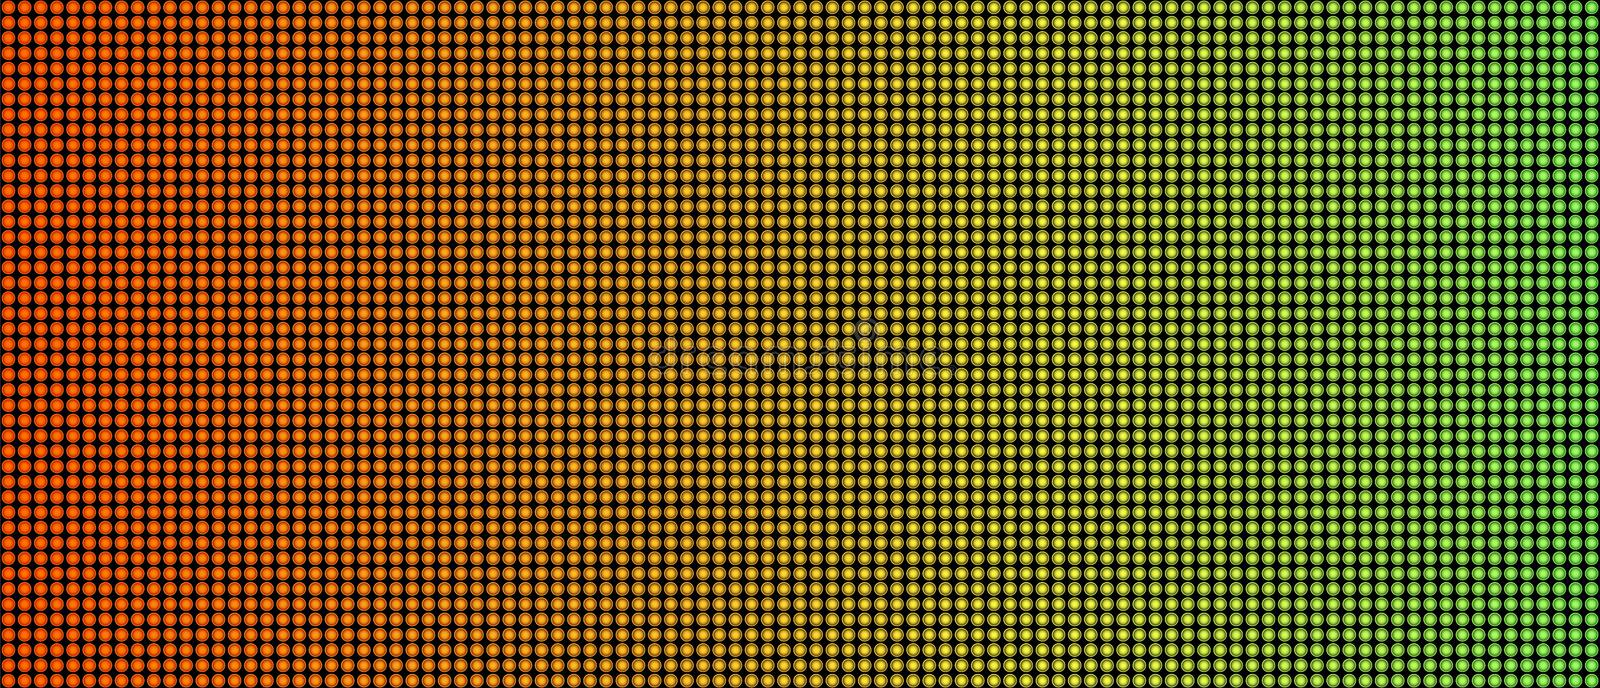 Creative illustration of led screen macro texture isolated on background. Art design rgb diode seamless pattern. Abstract concept. Graphic television projection vector illustration